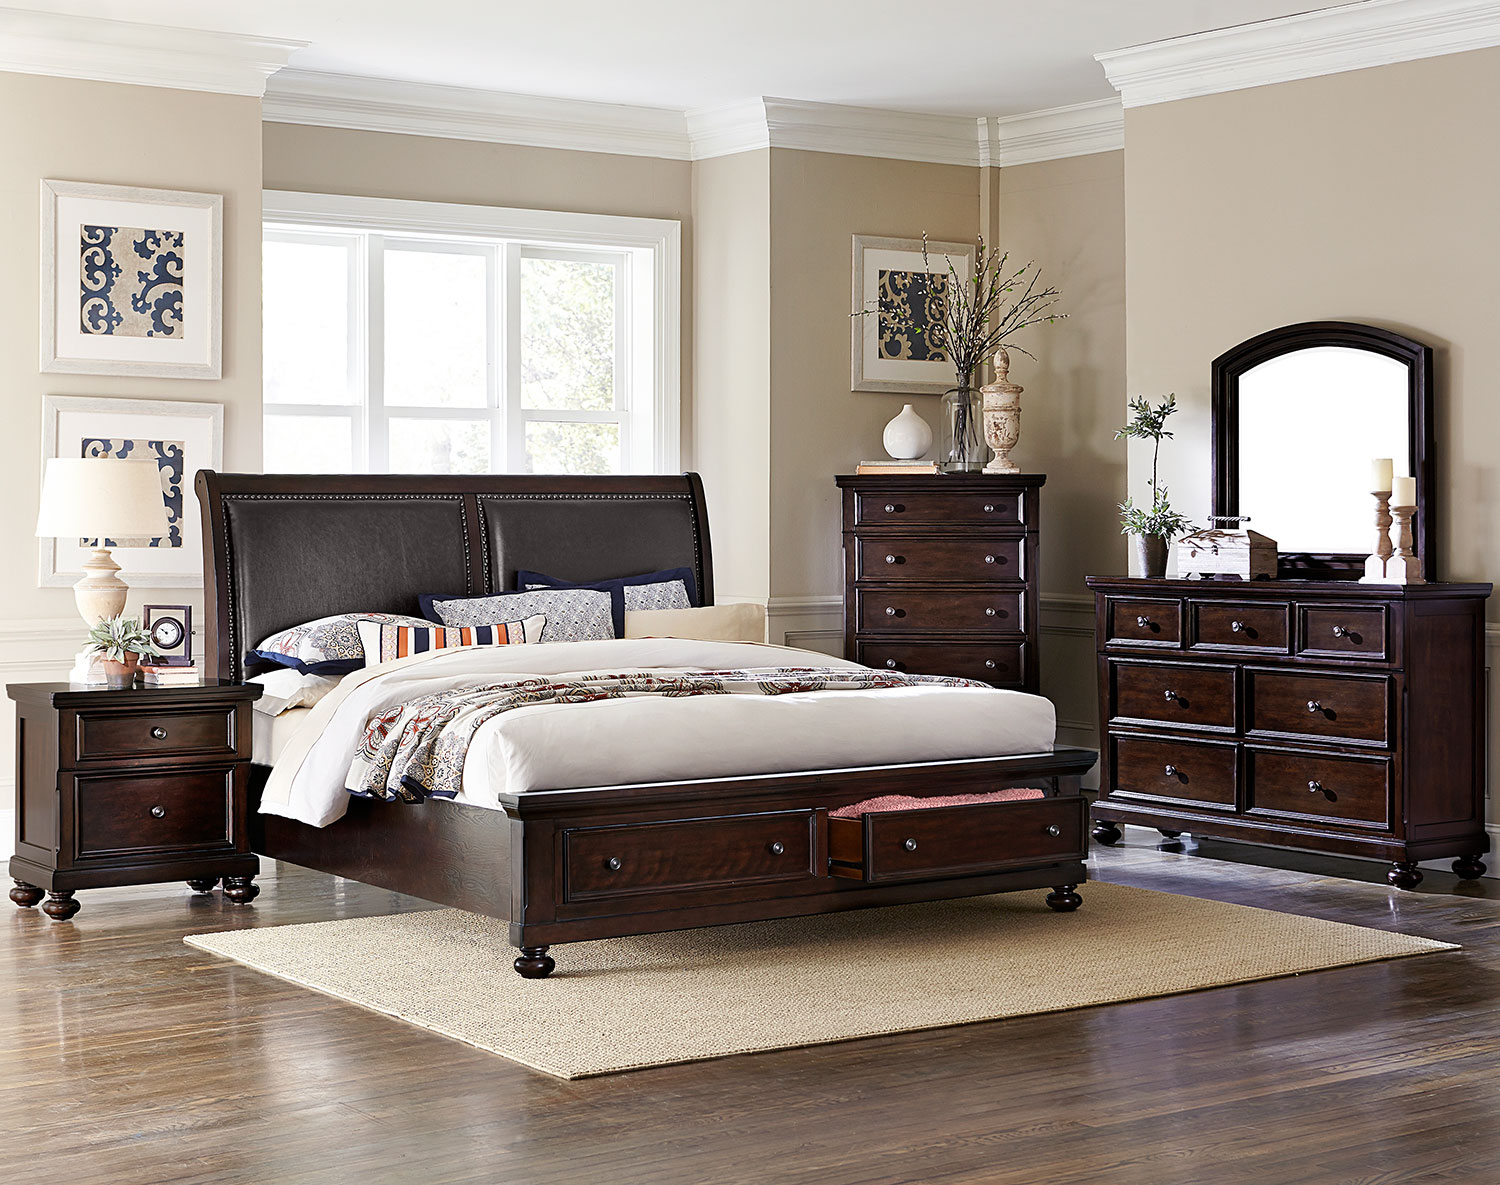 Chester 5-Piece Queen Bedroom Set - Cherry | Leon's